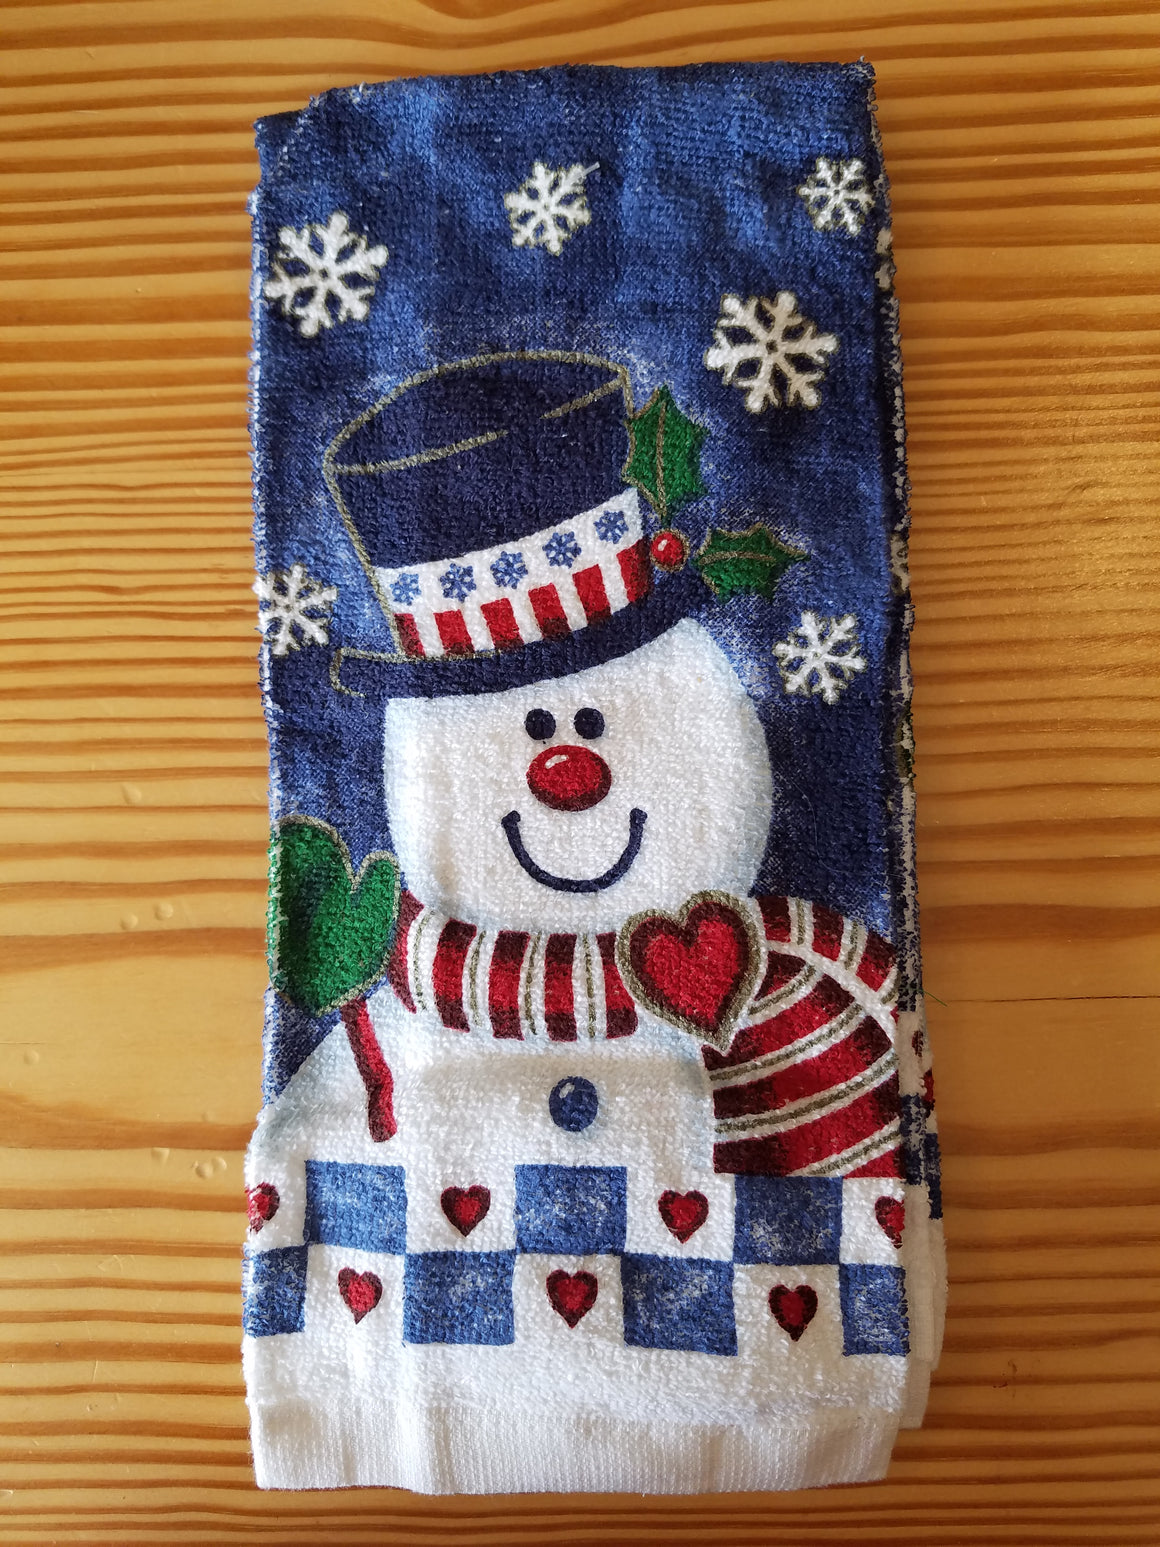 Dish Towels - Various Holiday Terry Cloth Towels